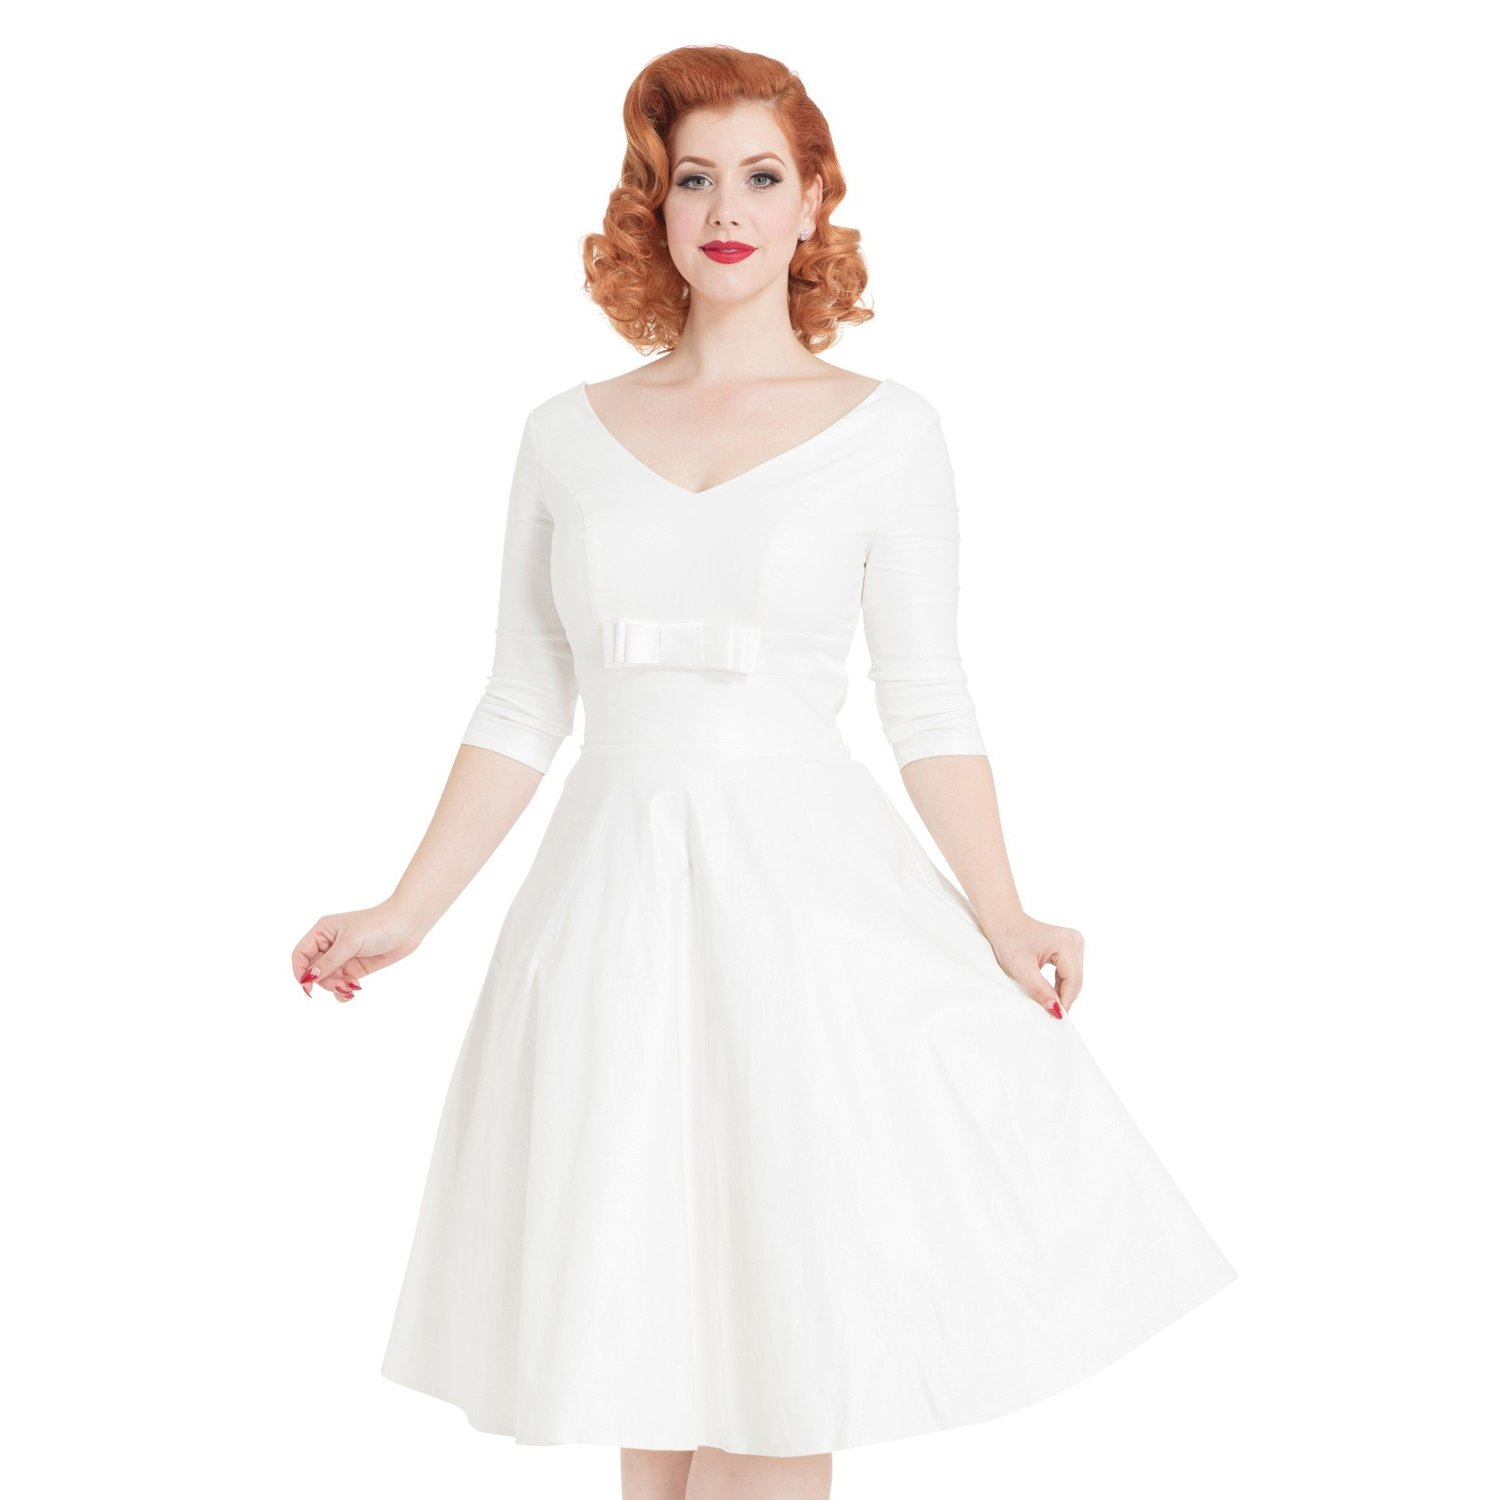 60s Wedding Dress | 1960s Style Wedding Dresses Voodoo Vixen Dorothy Ivory 1950s Retro Vintage Wedding Bridesmaid Prom Dress £89.99 AT vintagedancer.com